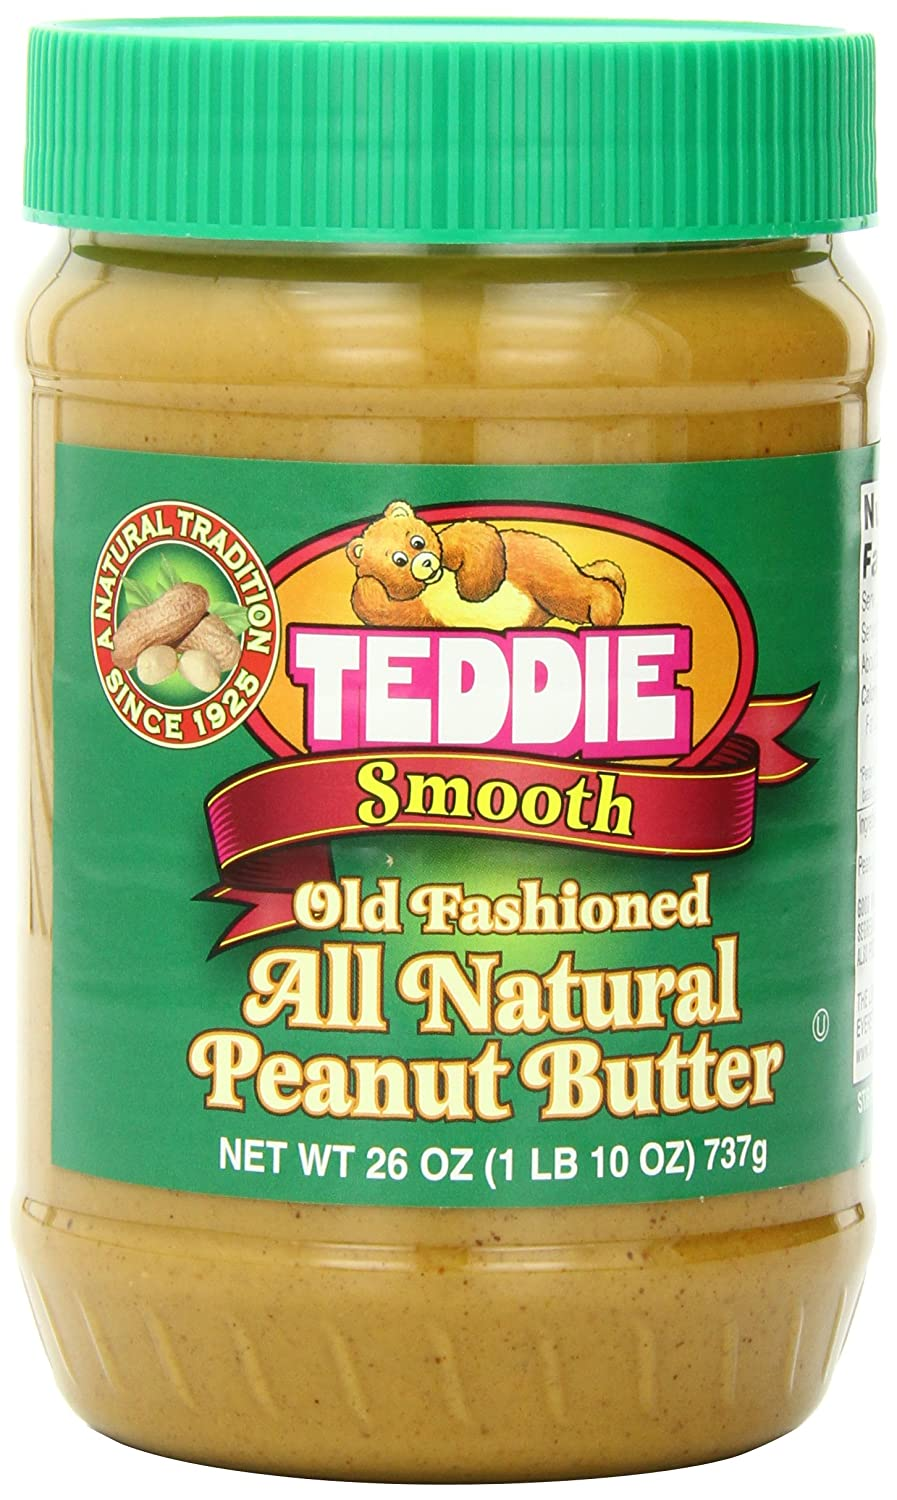 Teddie old fashioned peanut butter 98